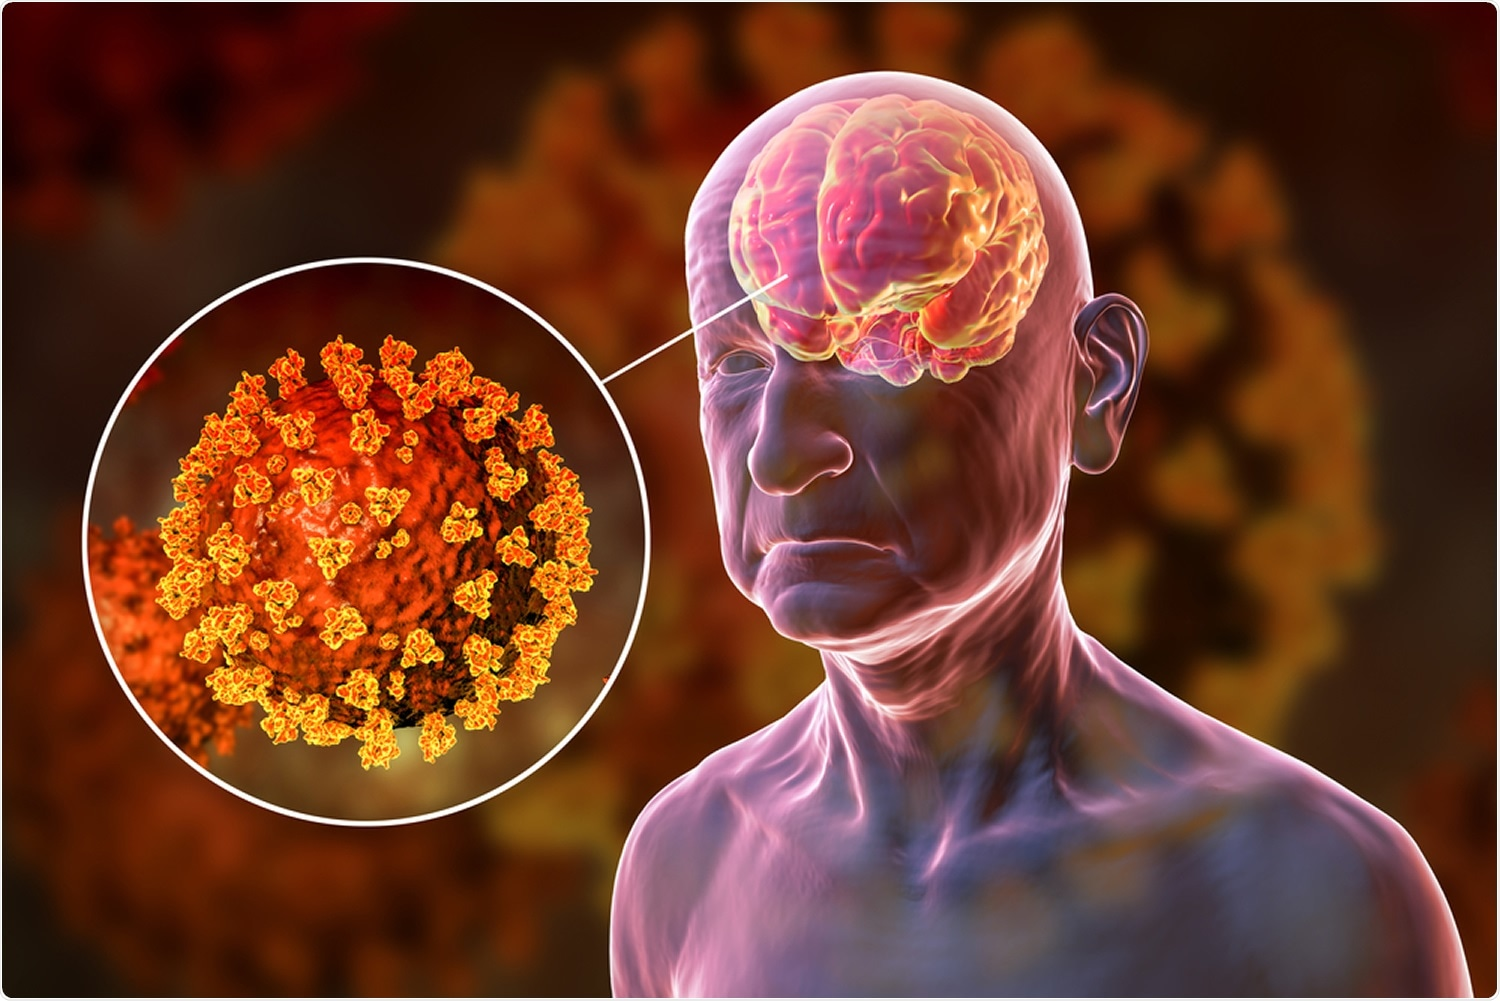 Review: COVID-19 and its effects on neurological functions. Image Credit: Kateryna Kon / Shutterstock